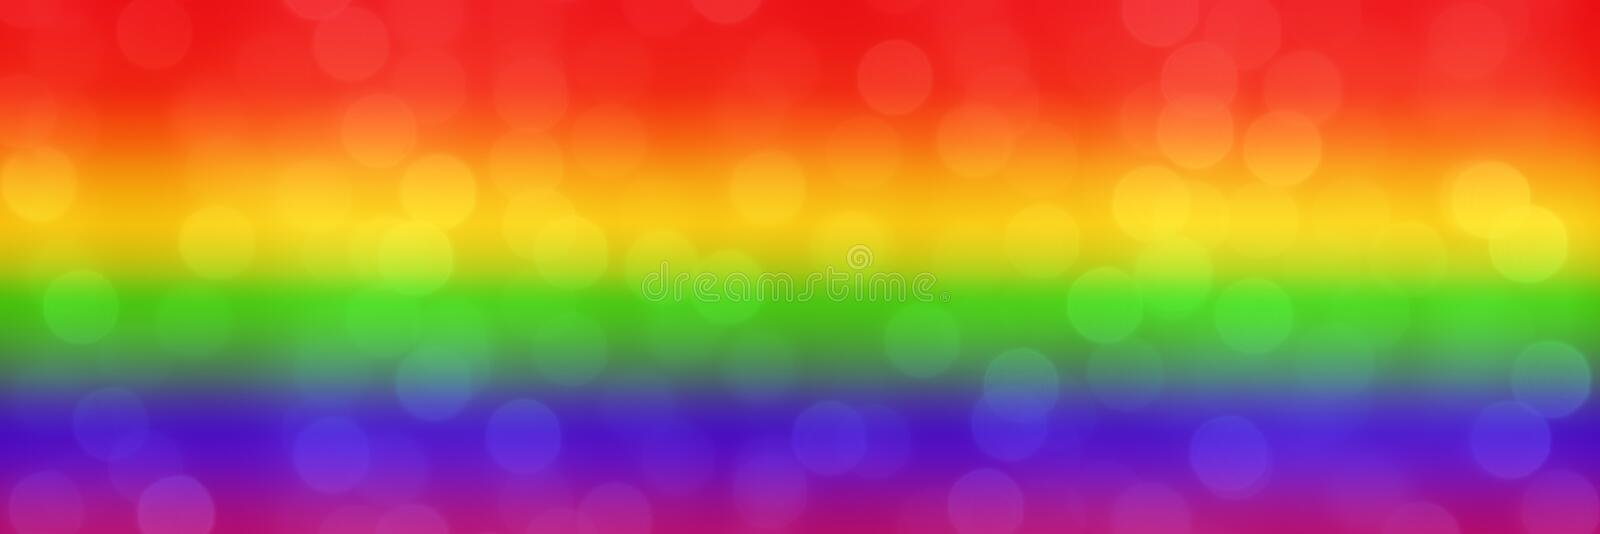 Blurred rainbow background with natural bokeh light balls. abstract gradient web wallpaper. LGBT movement concept. - Image royalty free stock photos